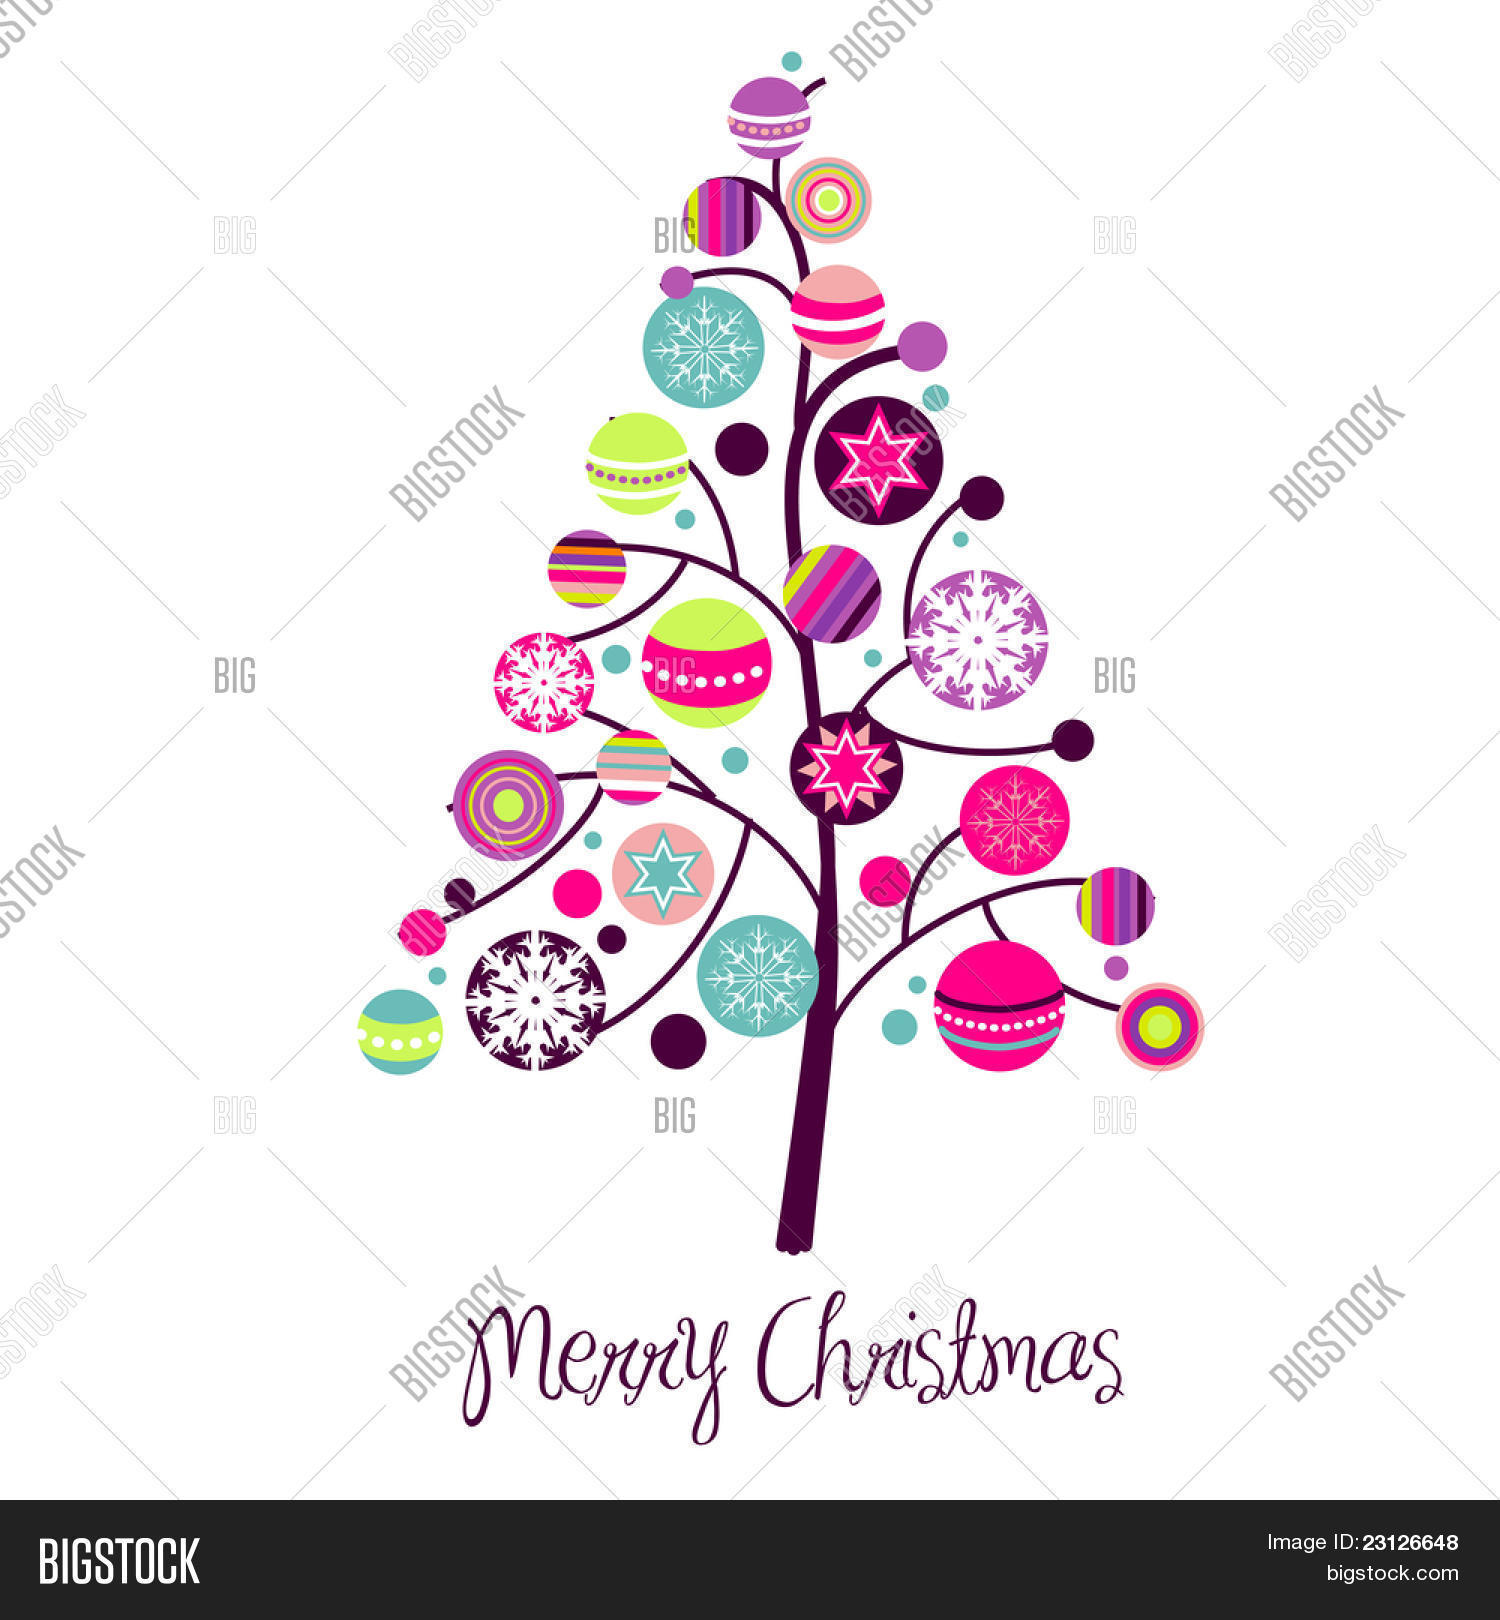 Abstract Christmas Vector & Photo (Free Trial) | Bigstock